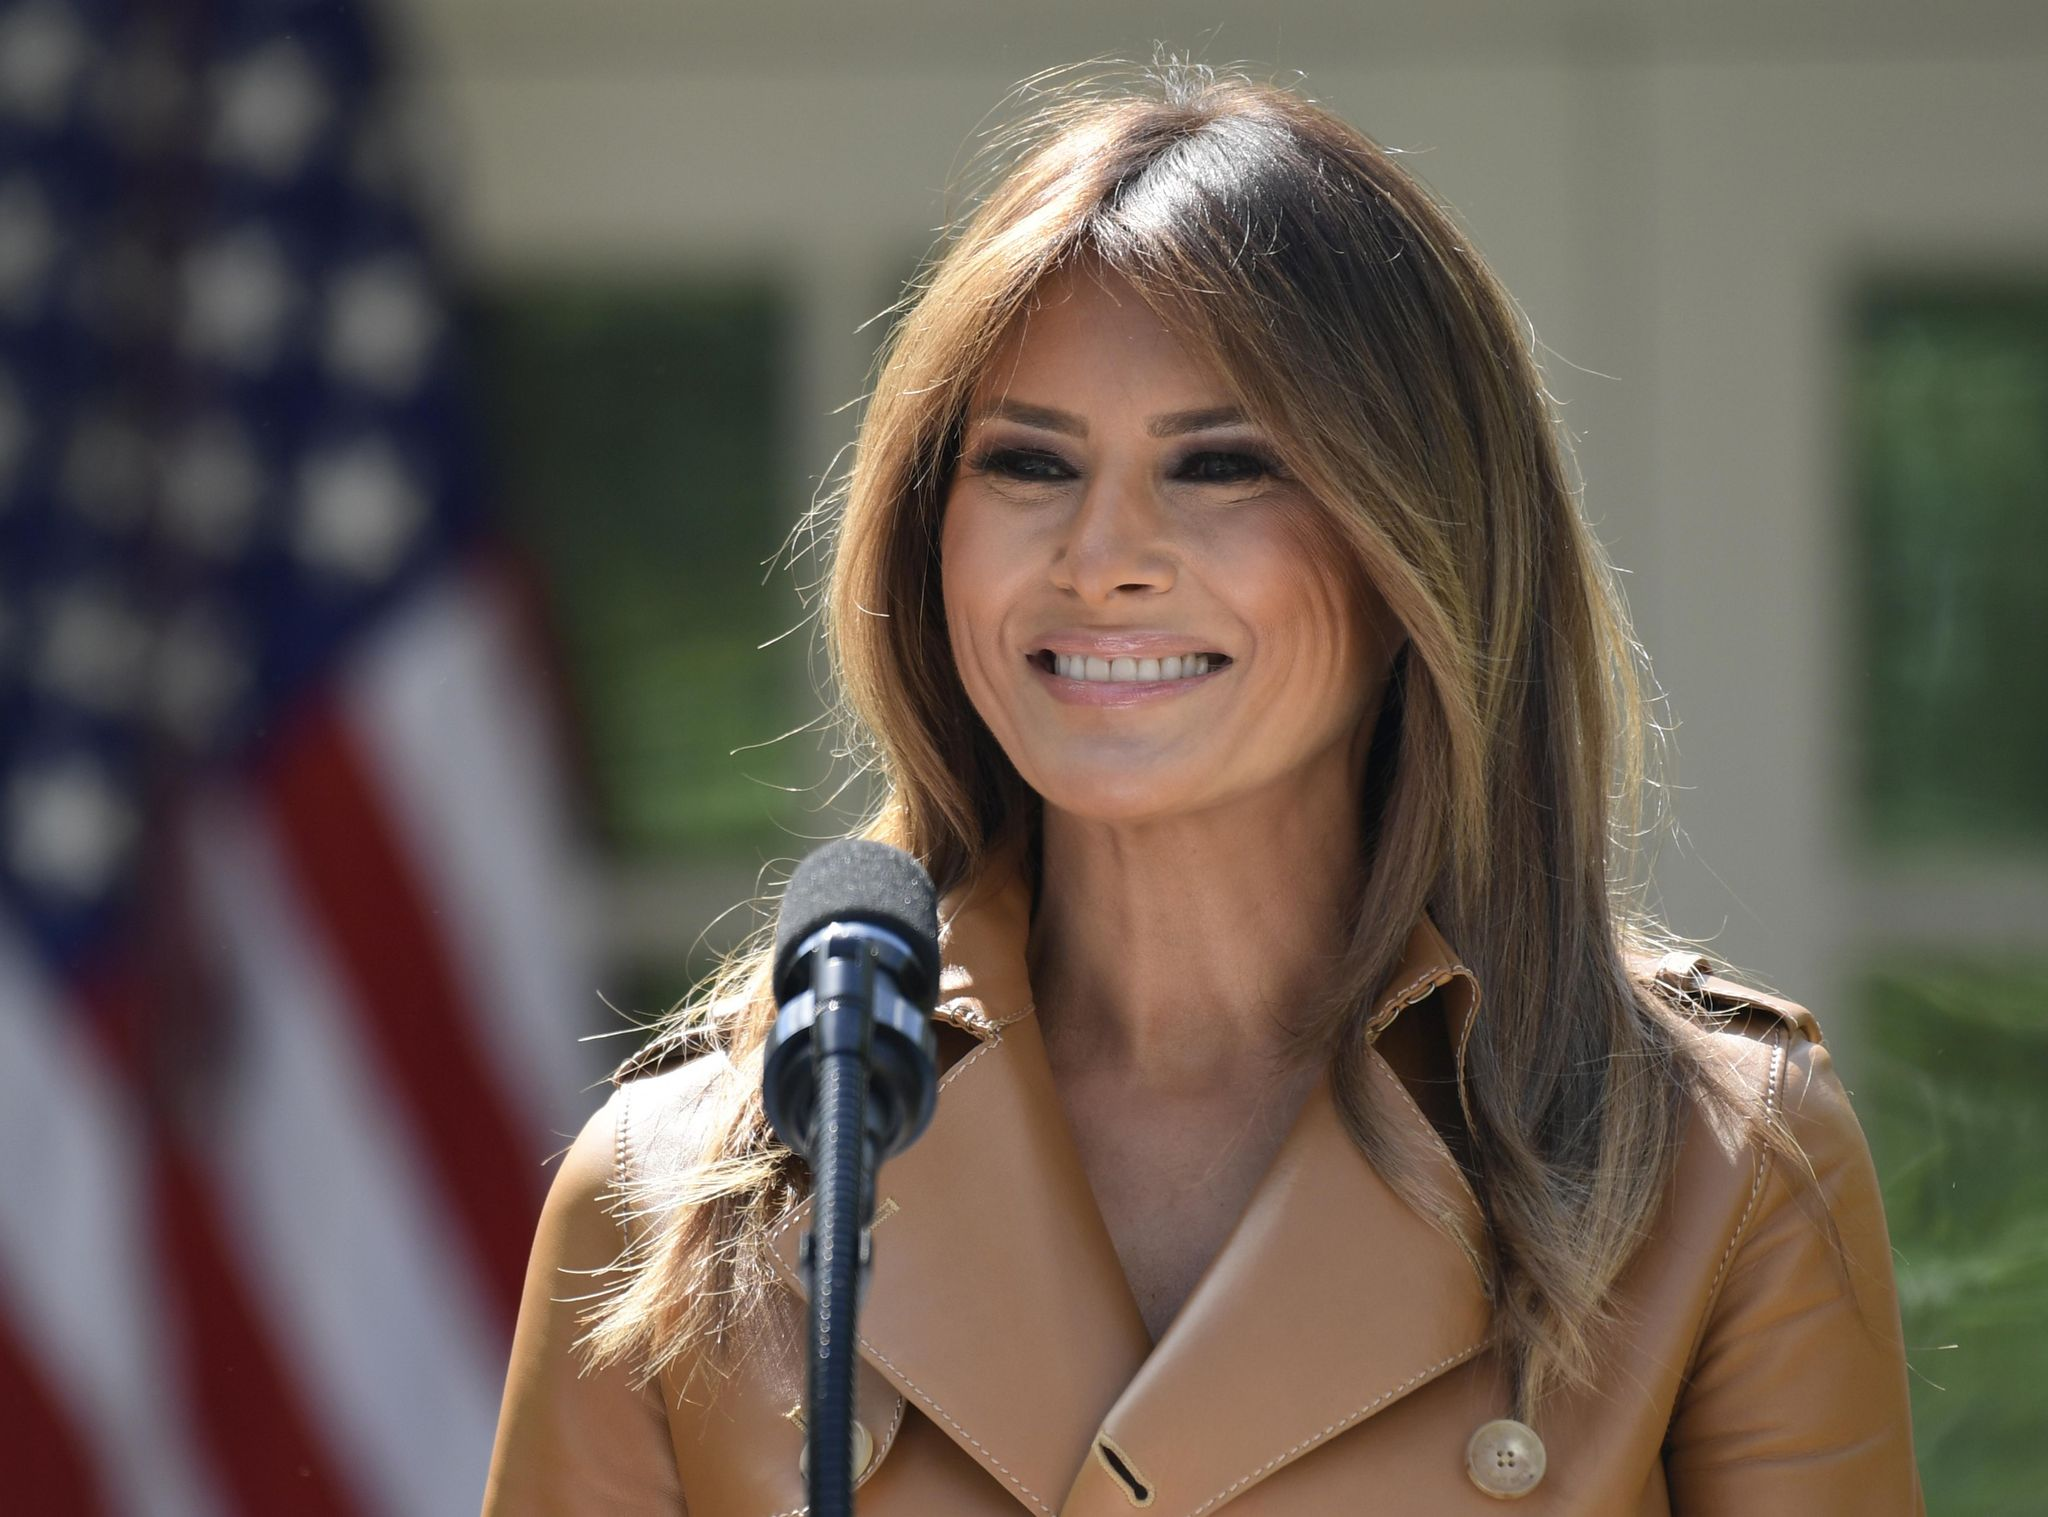 The Latest: First lady to remain hospitalized 2-3 days